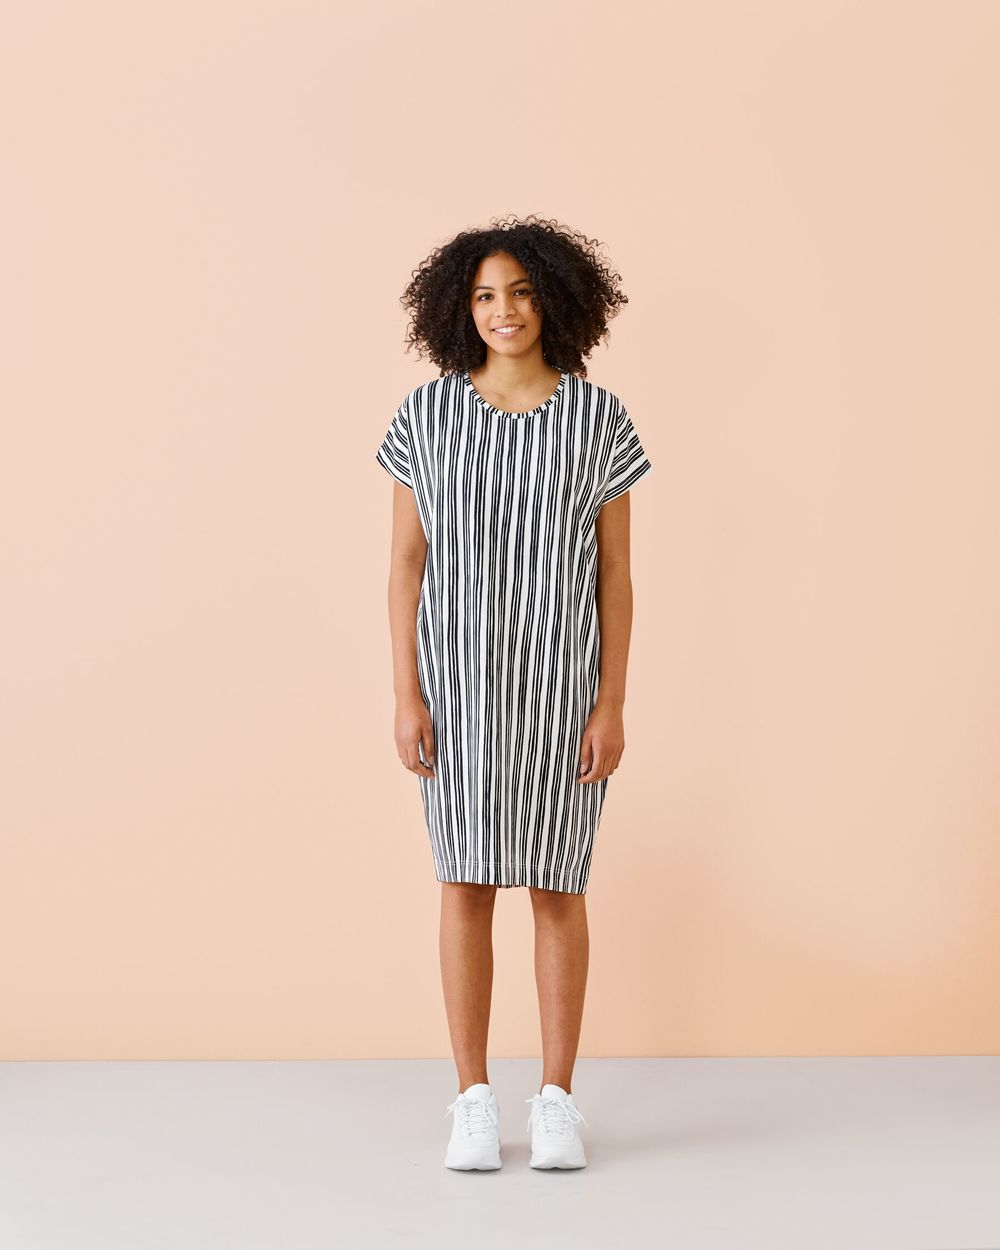 PAPU ADULT GIANT TEE DRESS, BLK/WHITE